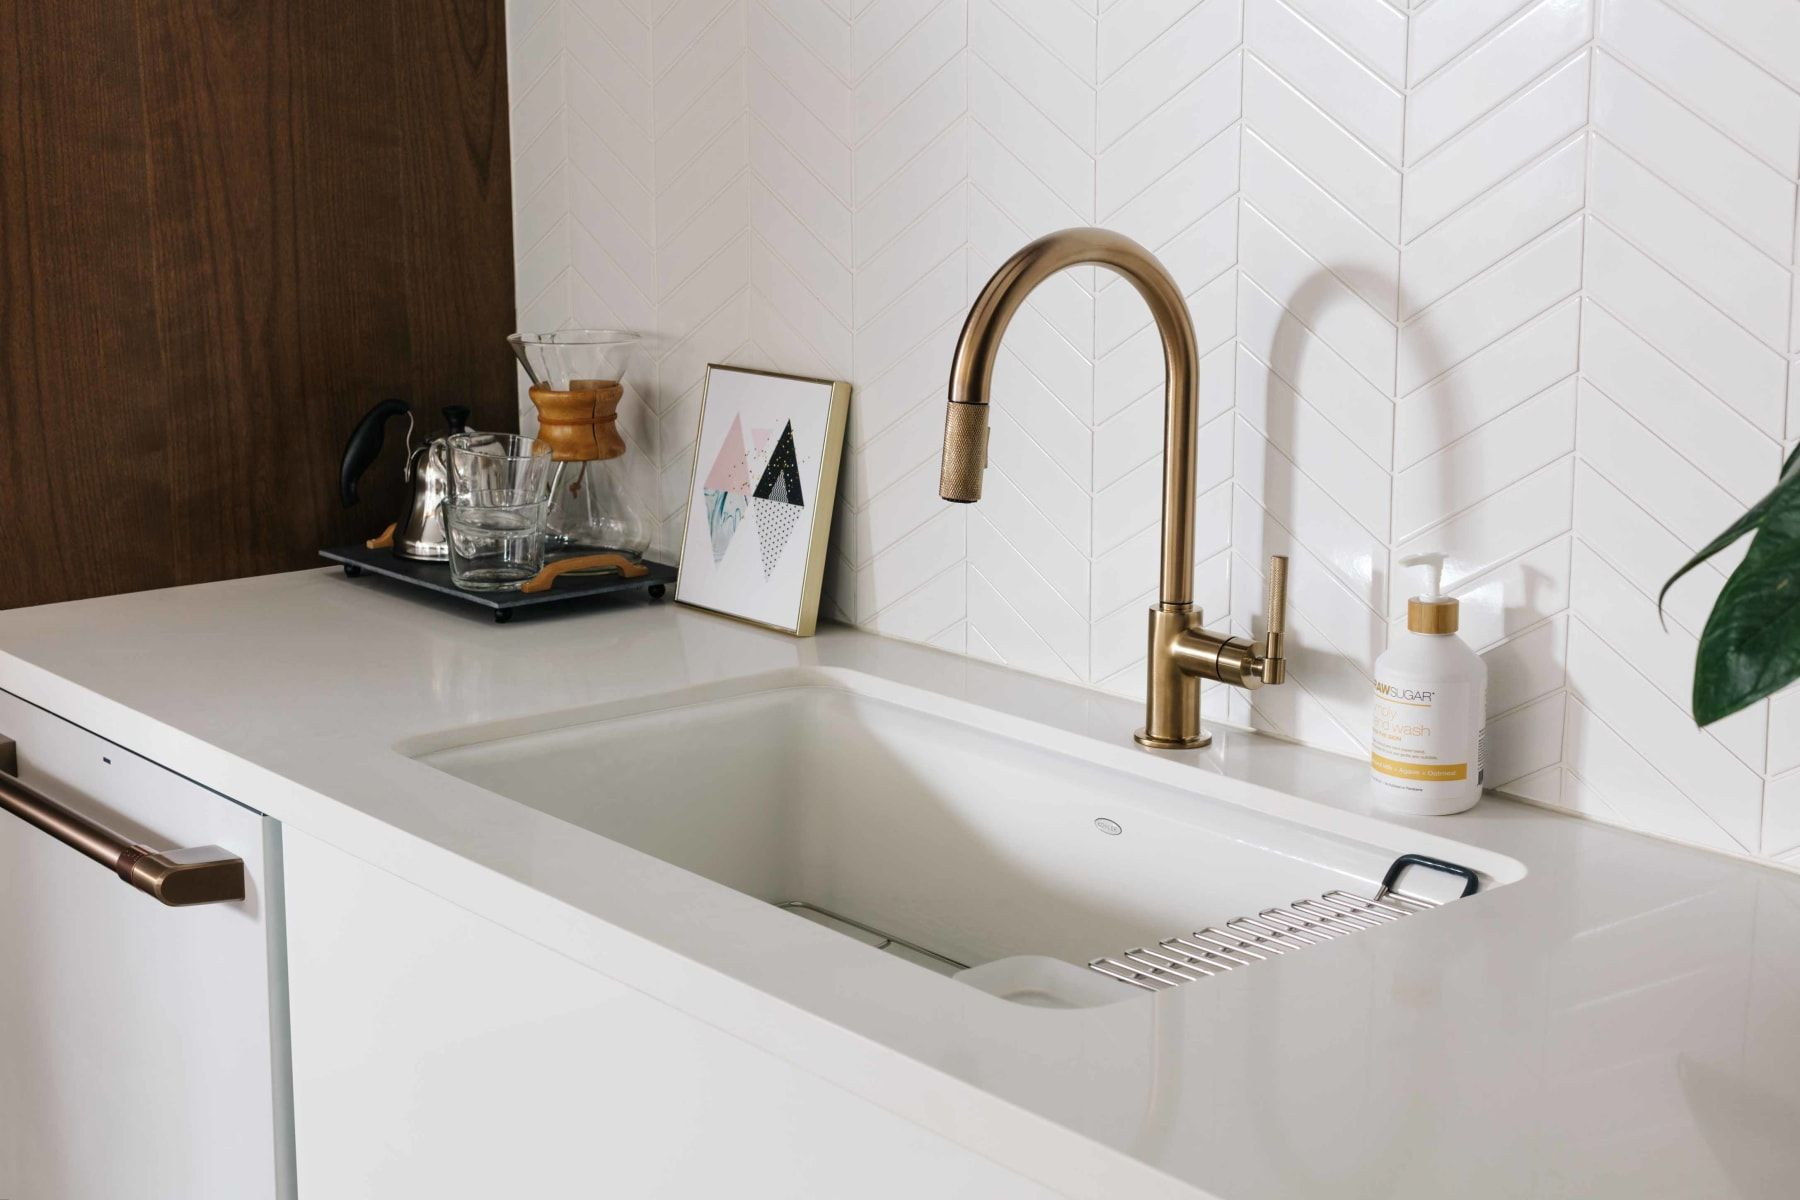 9 touchless kitchen faucets that make washing your hands so much easier